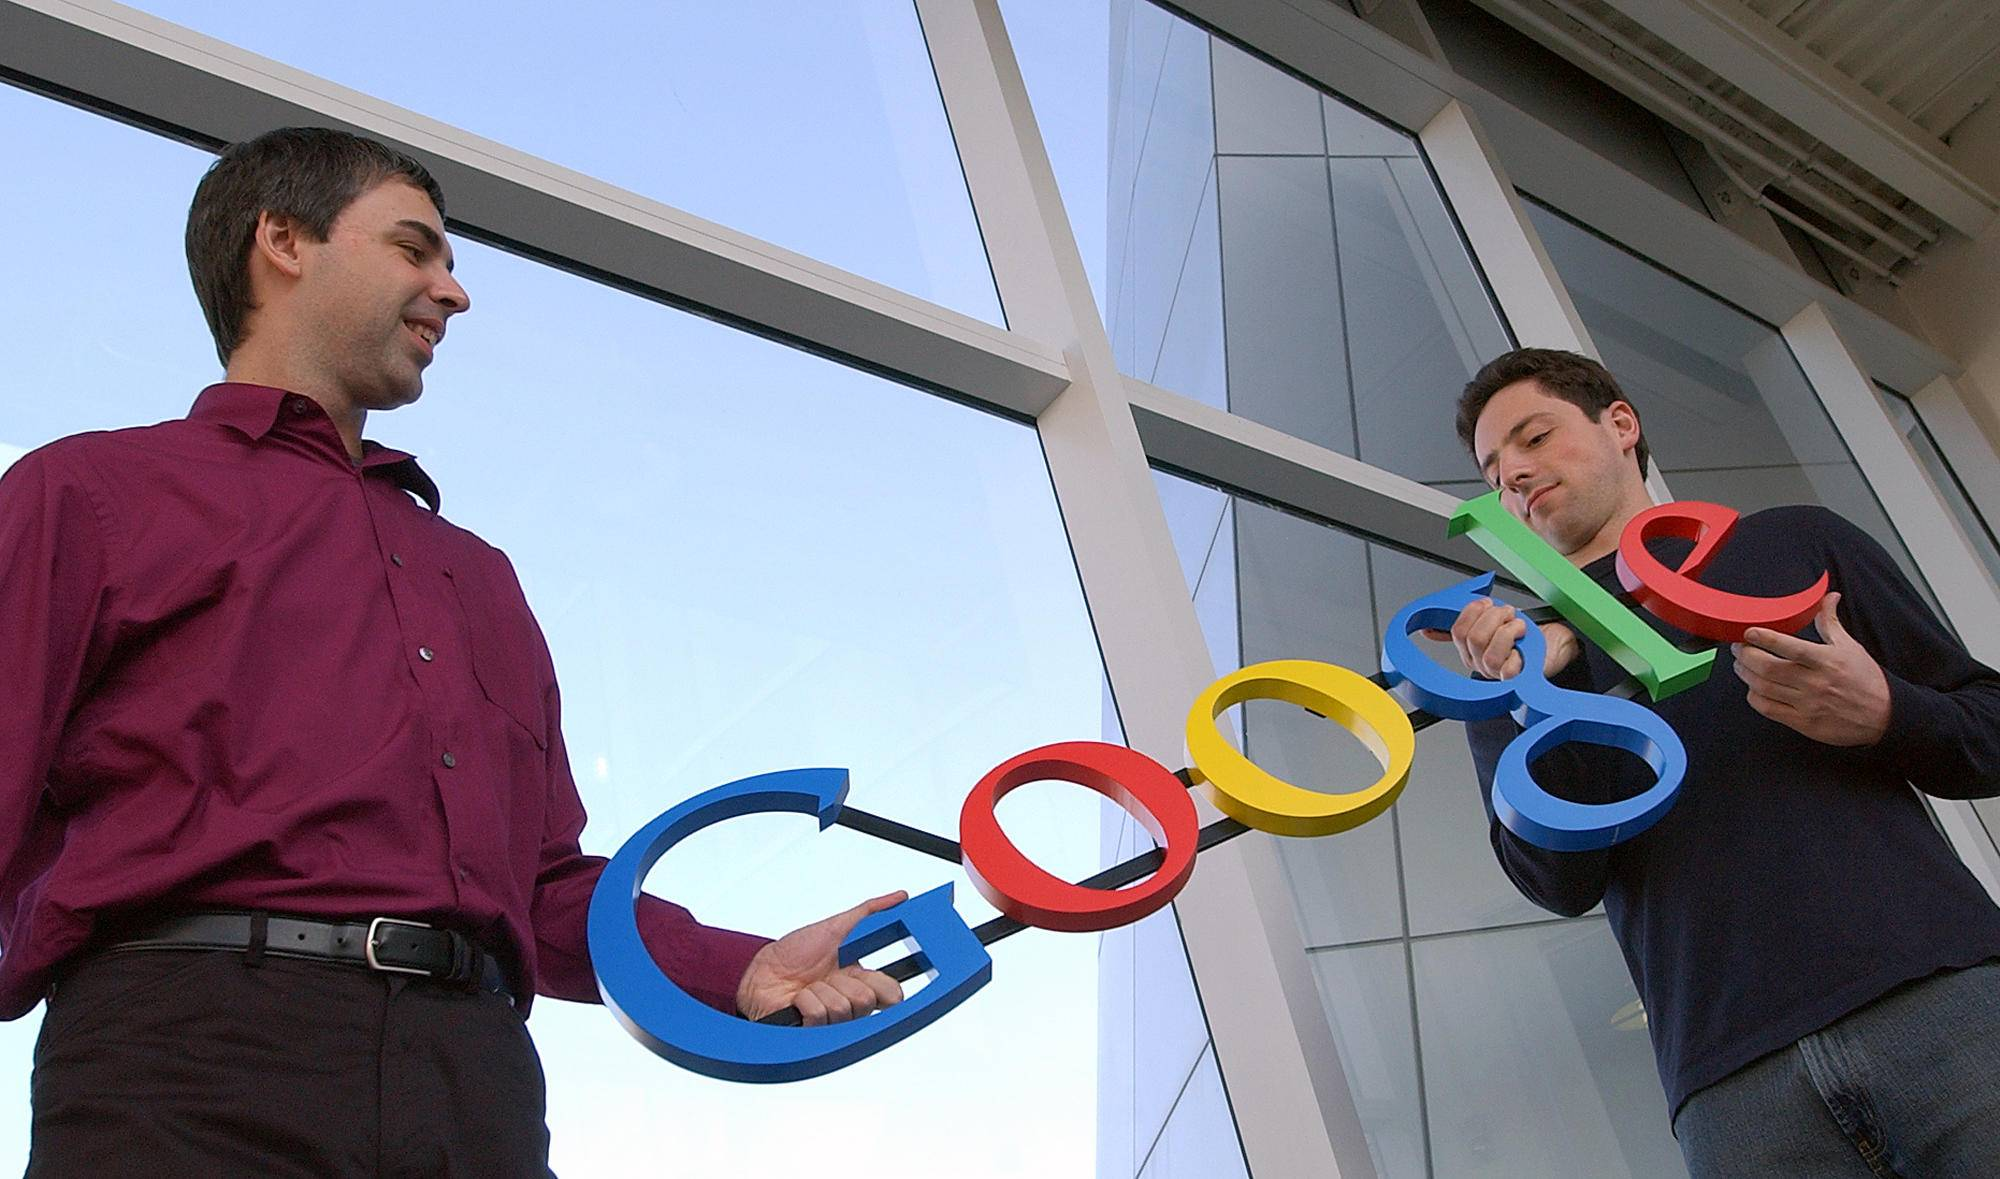 Google co-founders Larry Page, left, and Sergey Brin pose for photos at their company's headquarters in Mountain View, Calif. Google